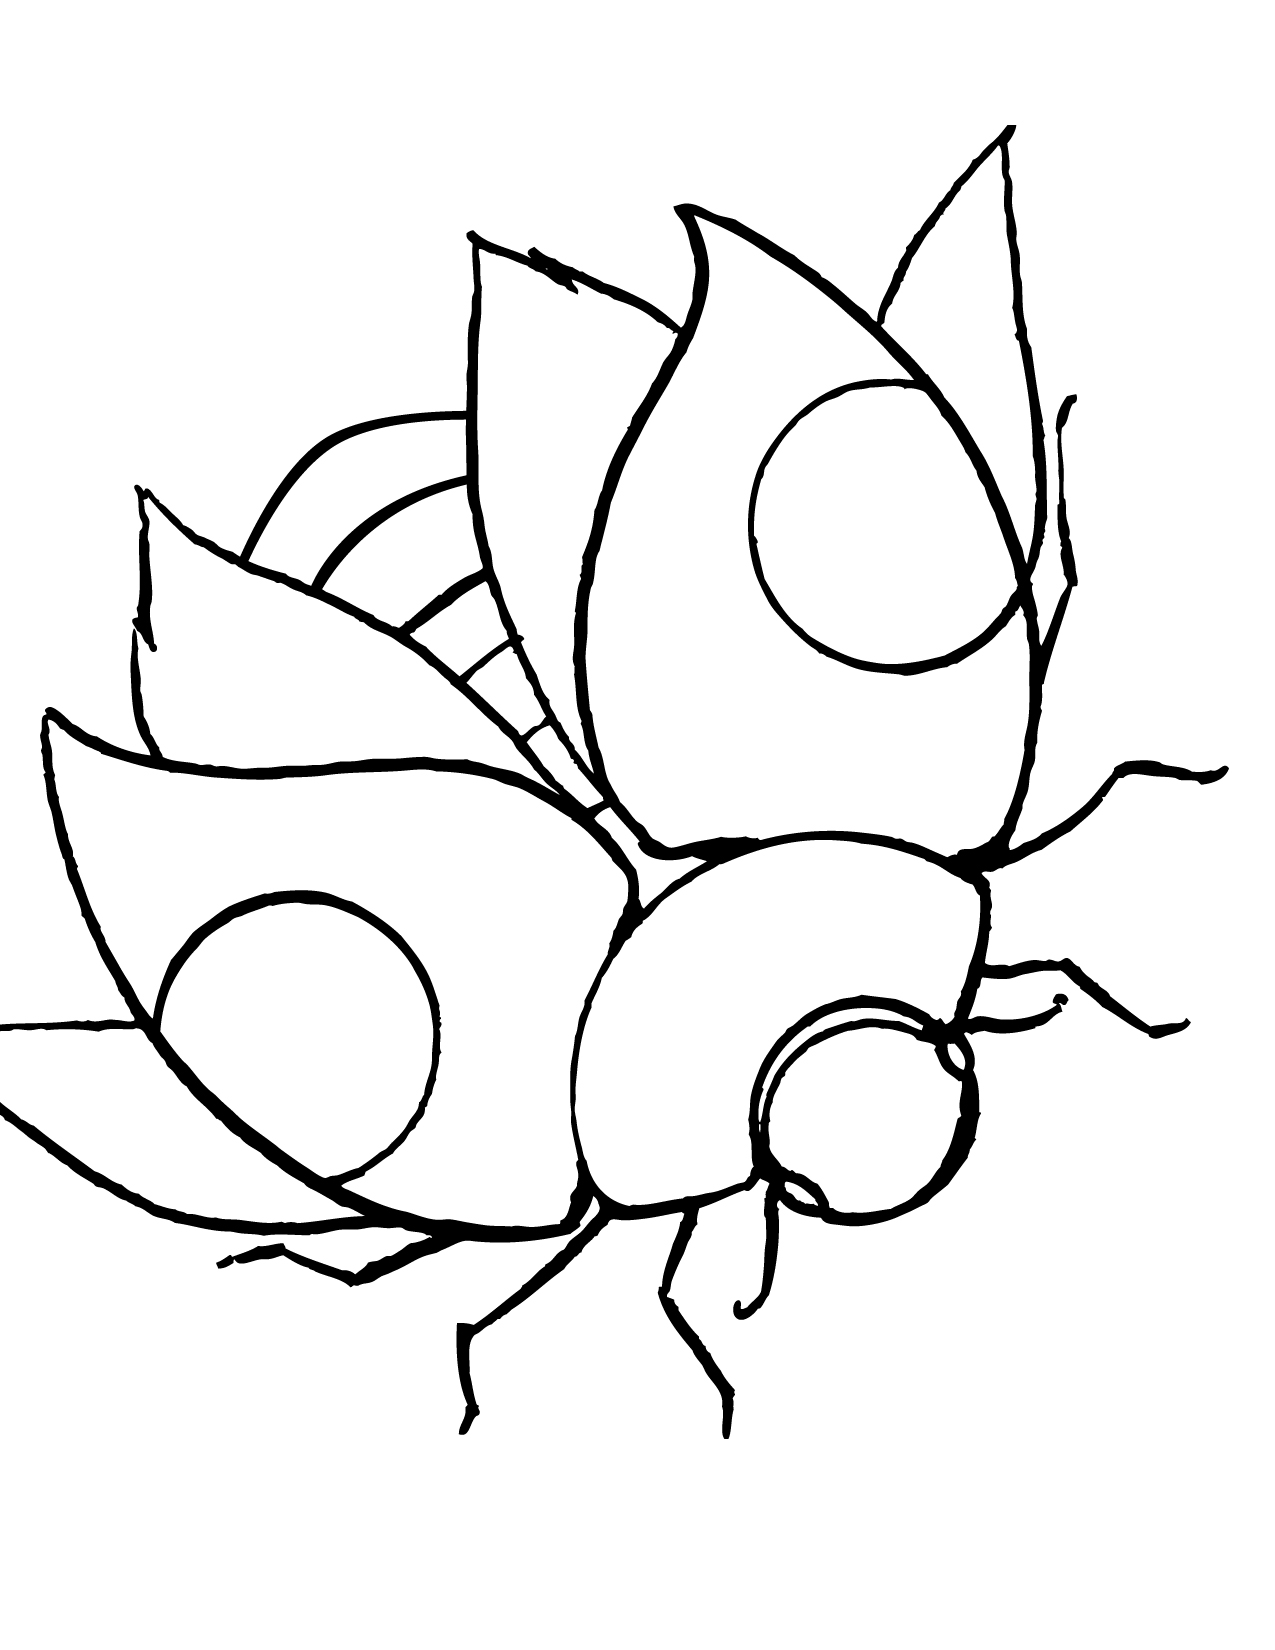 Printable Ladybug Coloring Pages | Coloring Me